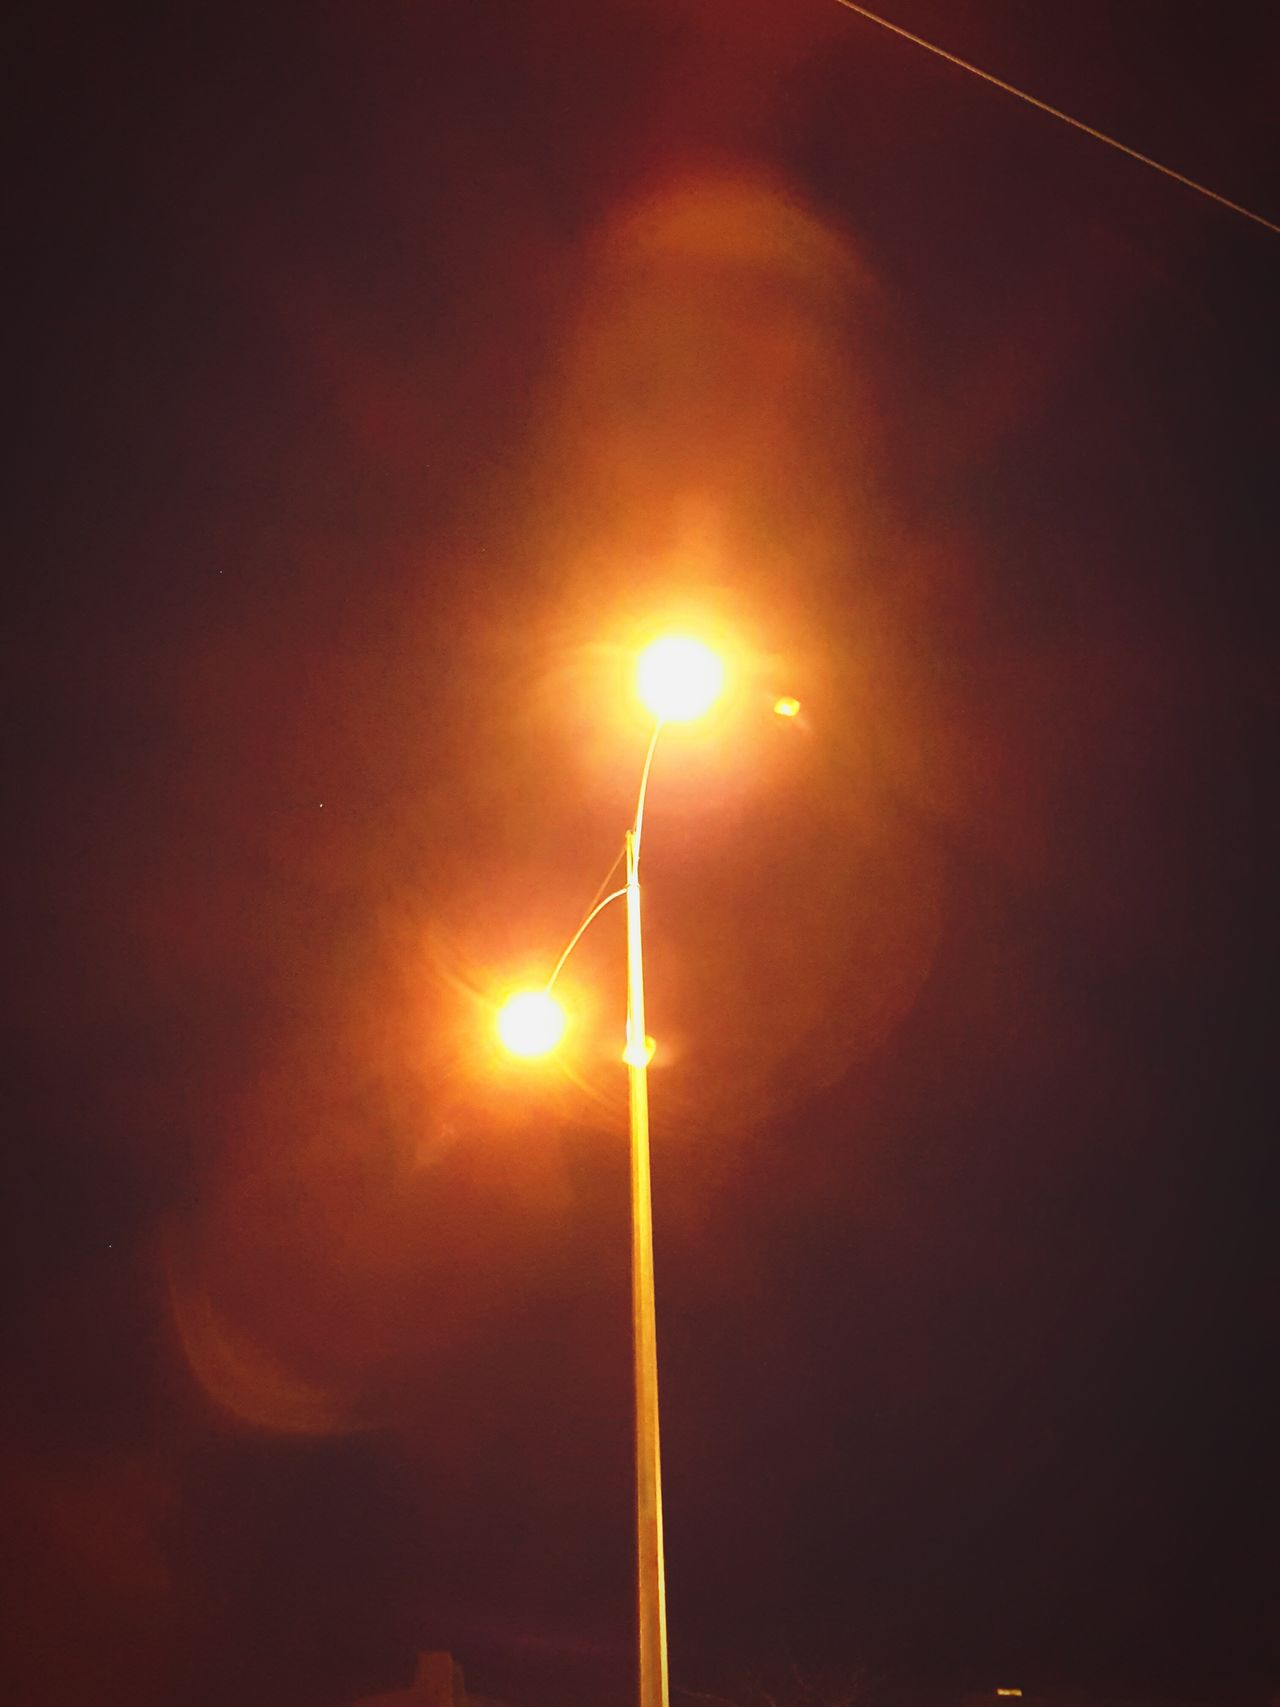 Street Light Illuminated Lighting Equipment Electricity  Night Low Angle View Electric Light Pole Lamp Post High Section Glowing Outdoors Sky Light Beam Spotlight Vibrant Color Tall No People Scenics Lens Flare